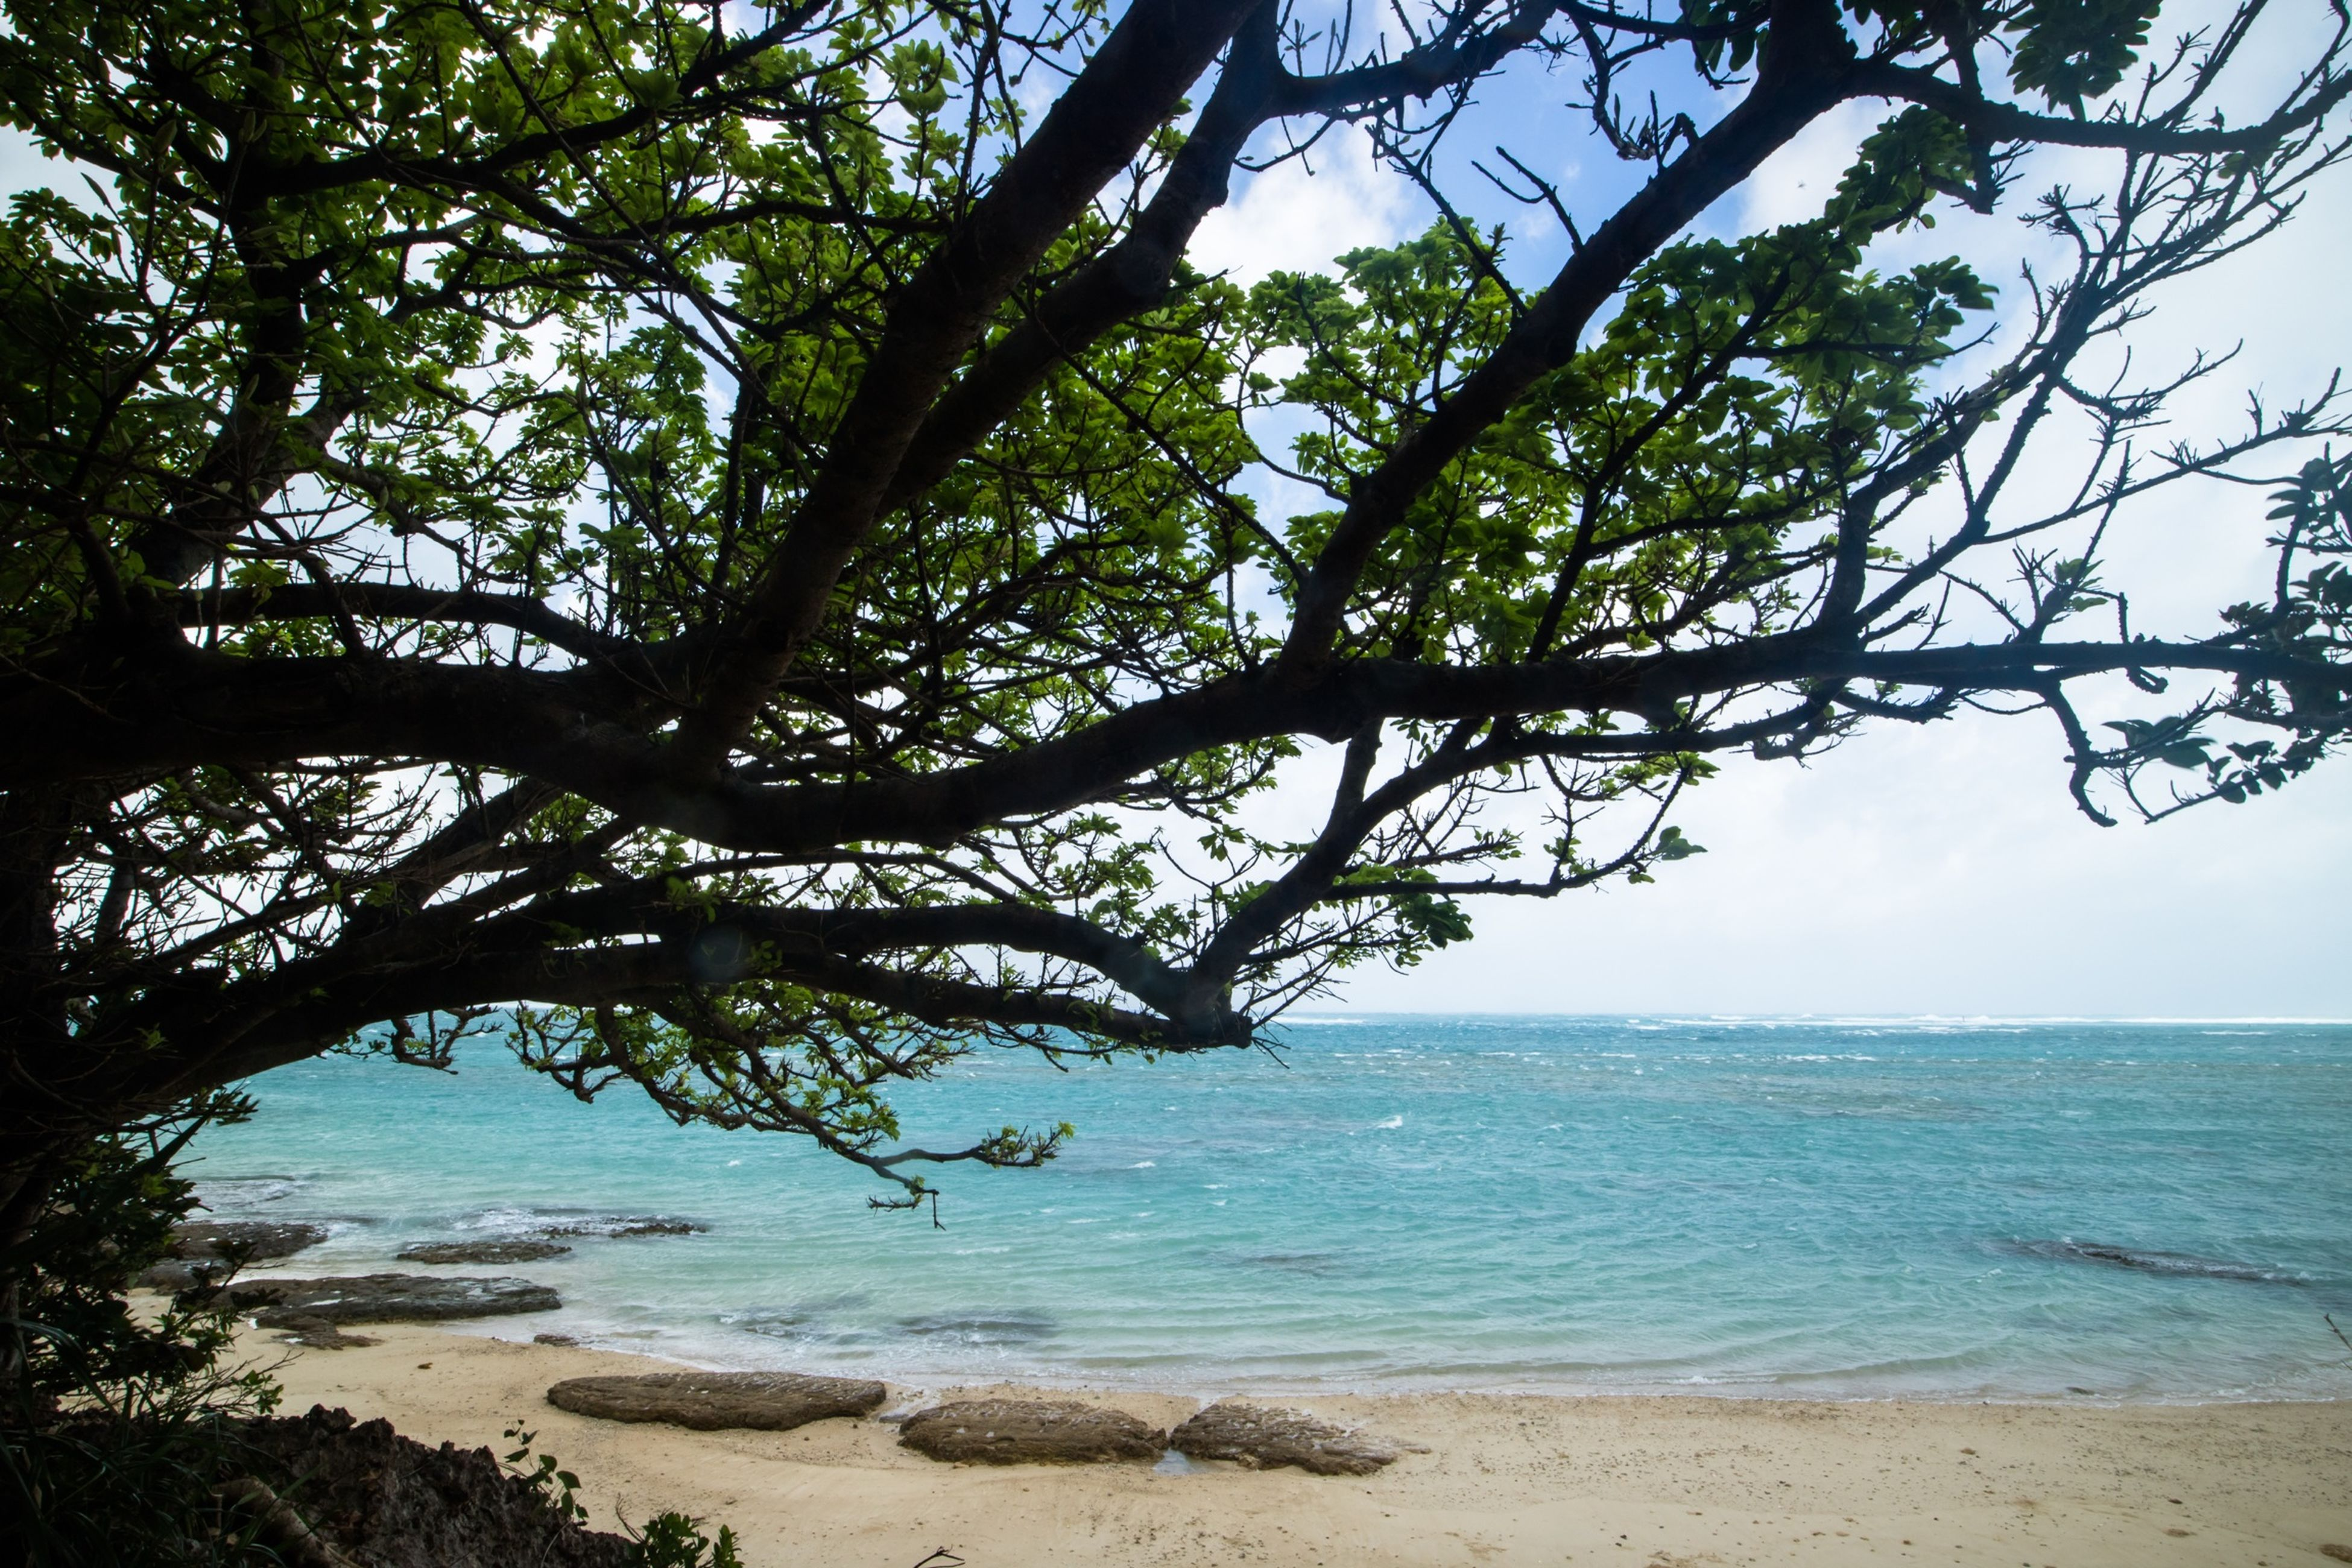 tree, sea, beach, tranquility, water, horizon over water, tranquil scene, scenics, beauty in nature, branch, nature, shore, sky, growth, sand, idyllic, tree trunk, day, outdoors, remote